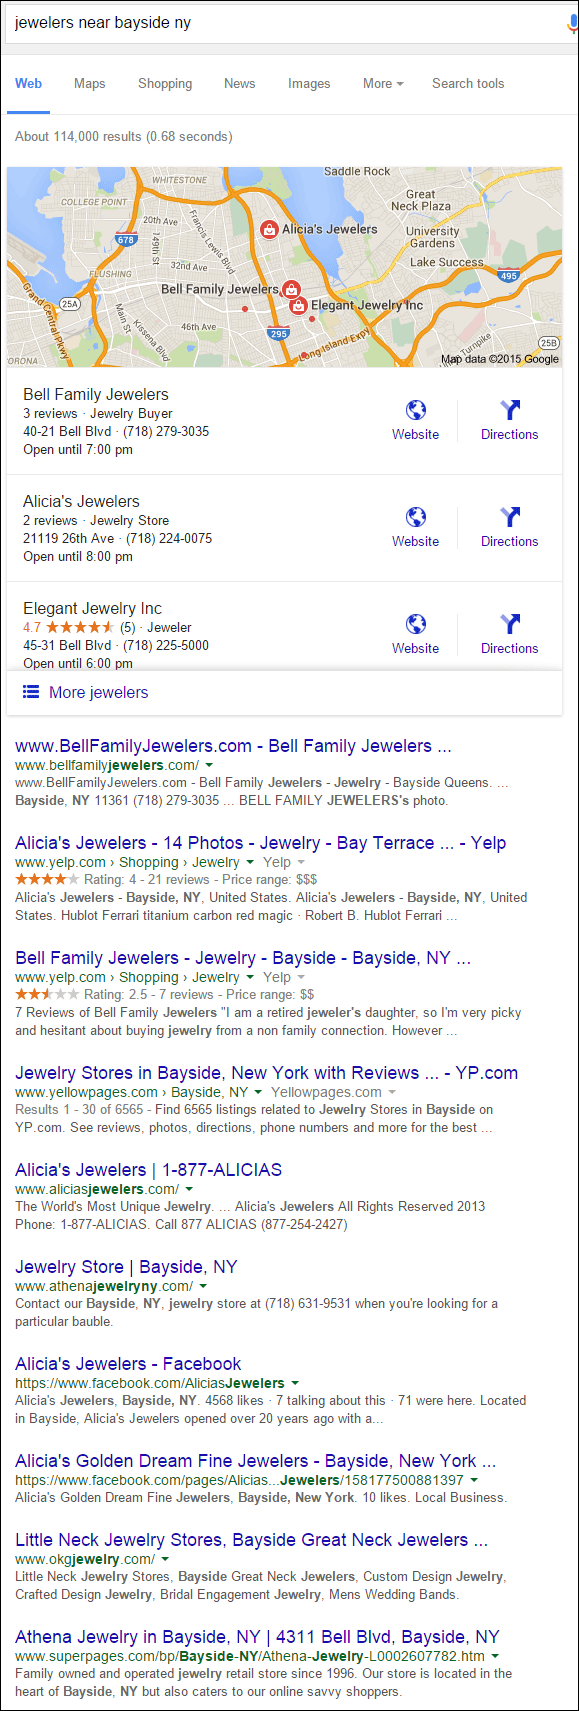 Bell Family Jewelers Website Review 1370-serp-95